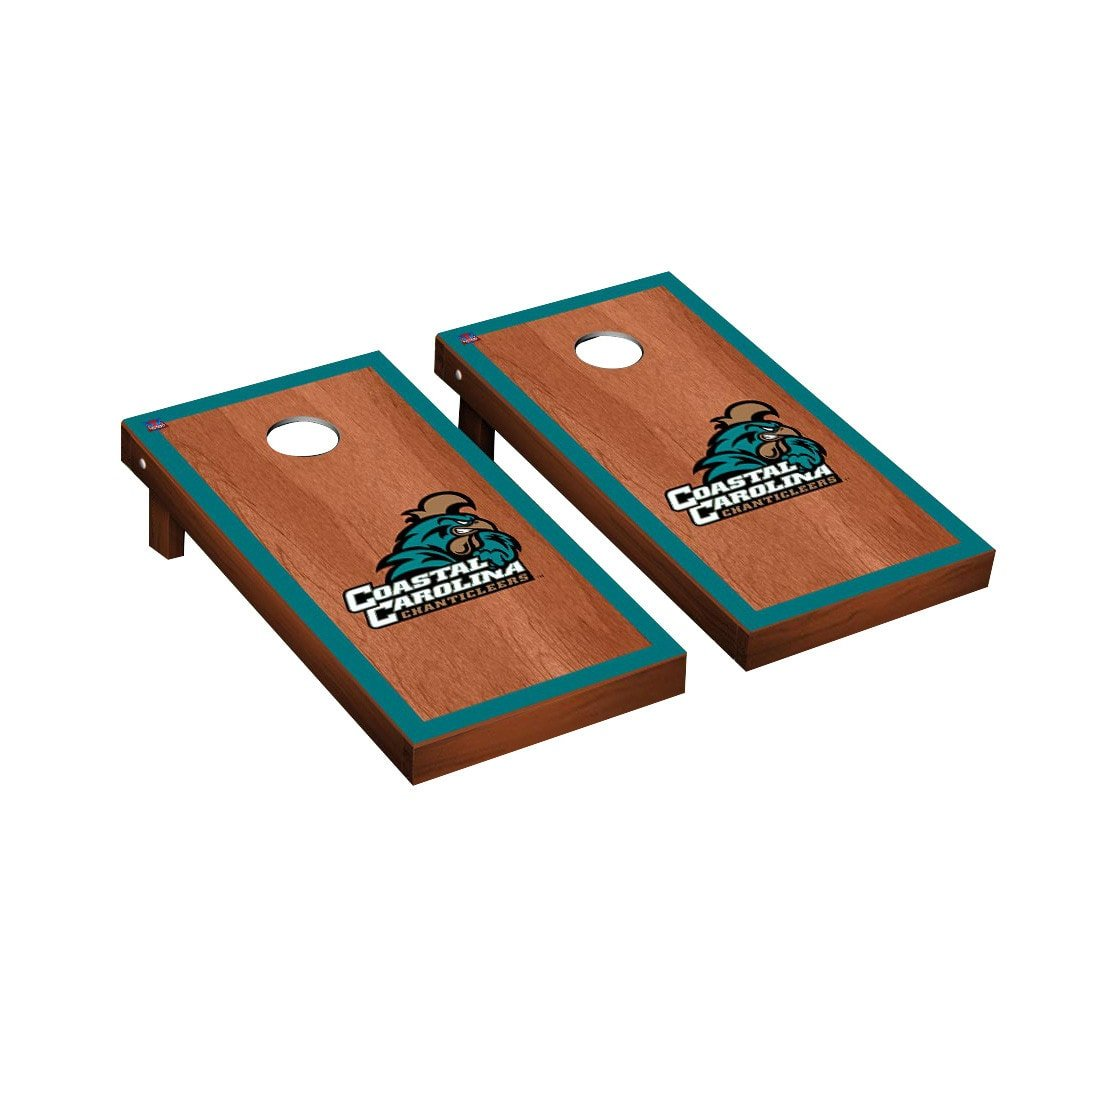 Victory Tailgate Coastal Carolina Chanticleers Regulation Cornhole Game Set Rosewood Stained Border Version